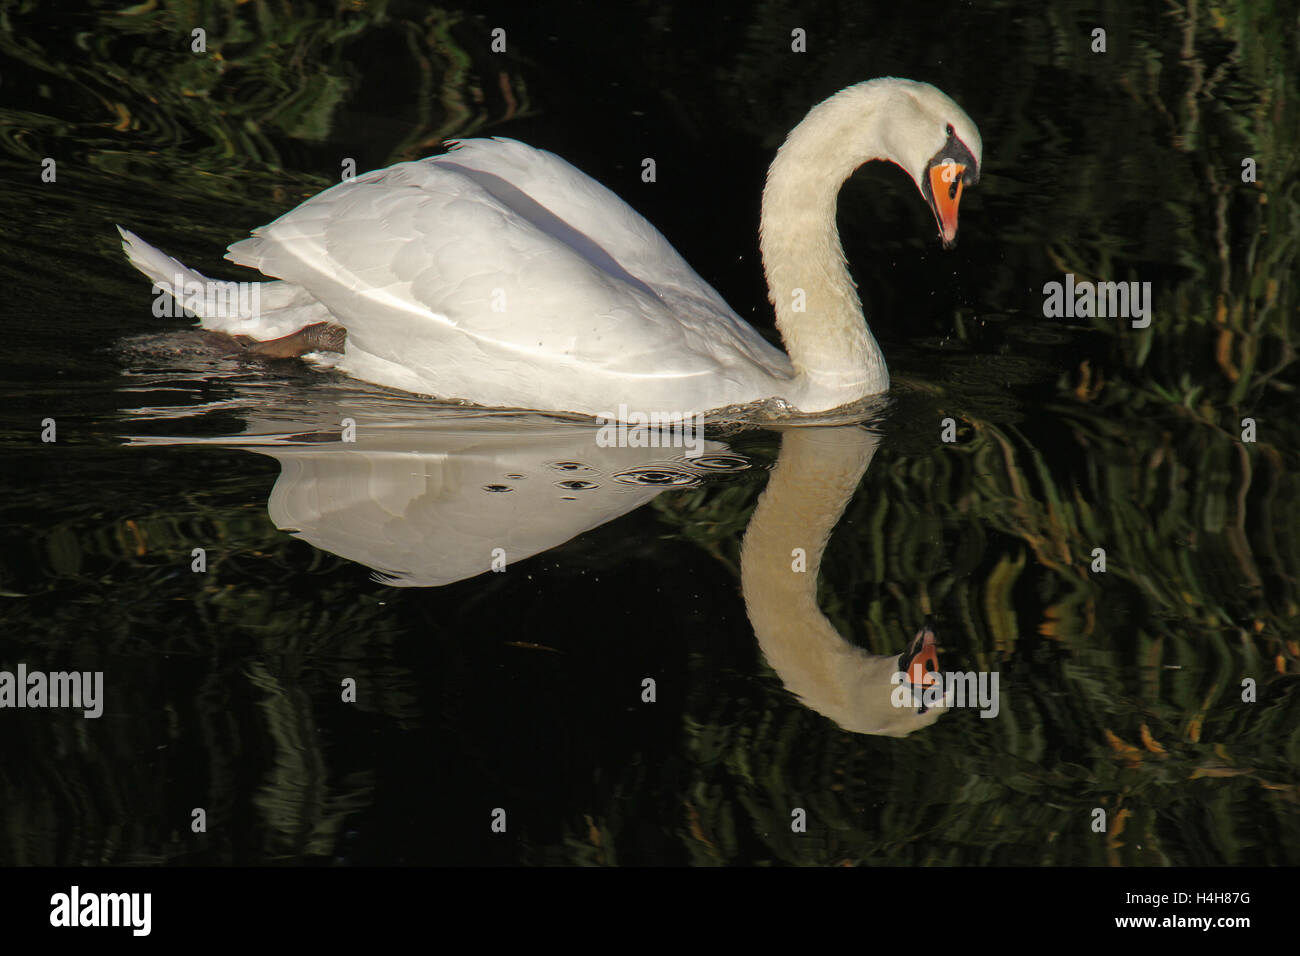 curious mute swan looking at the camera Latin cygnus olor anatidae swimming in the river at Port Meadow Oxford by - Stock Image